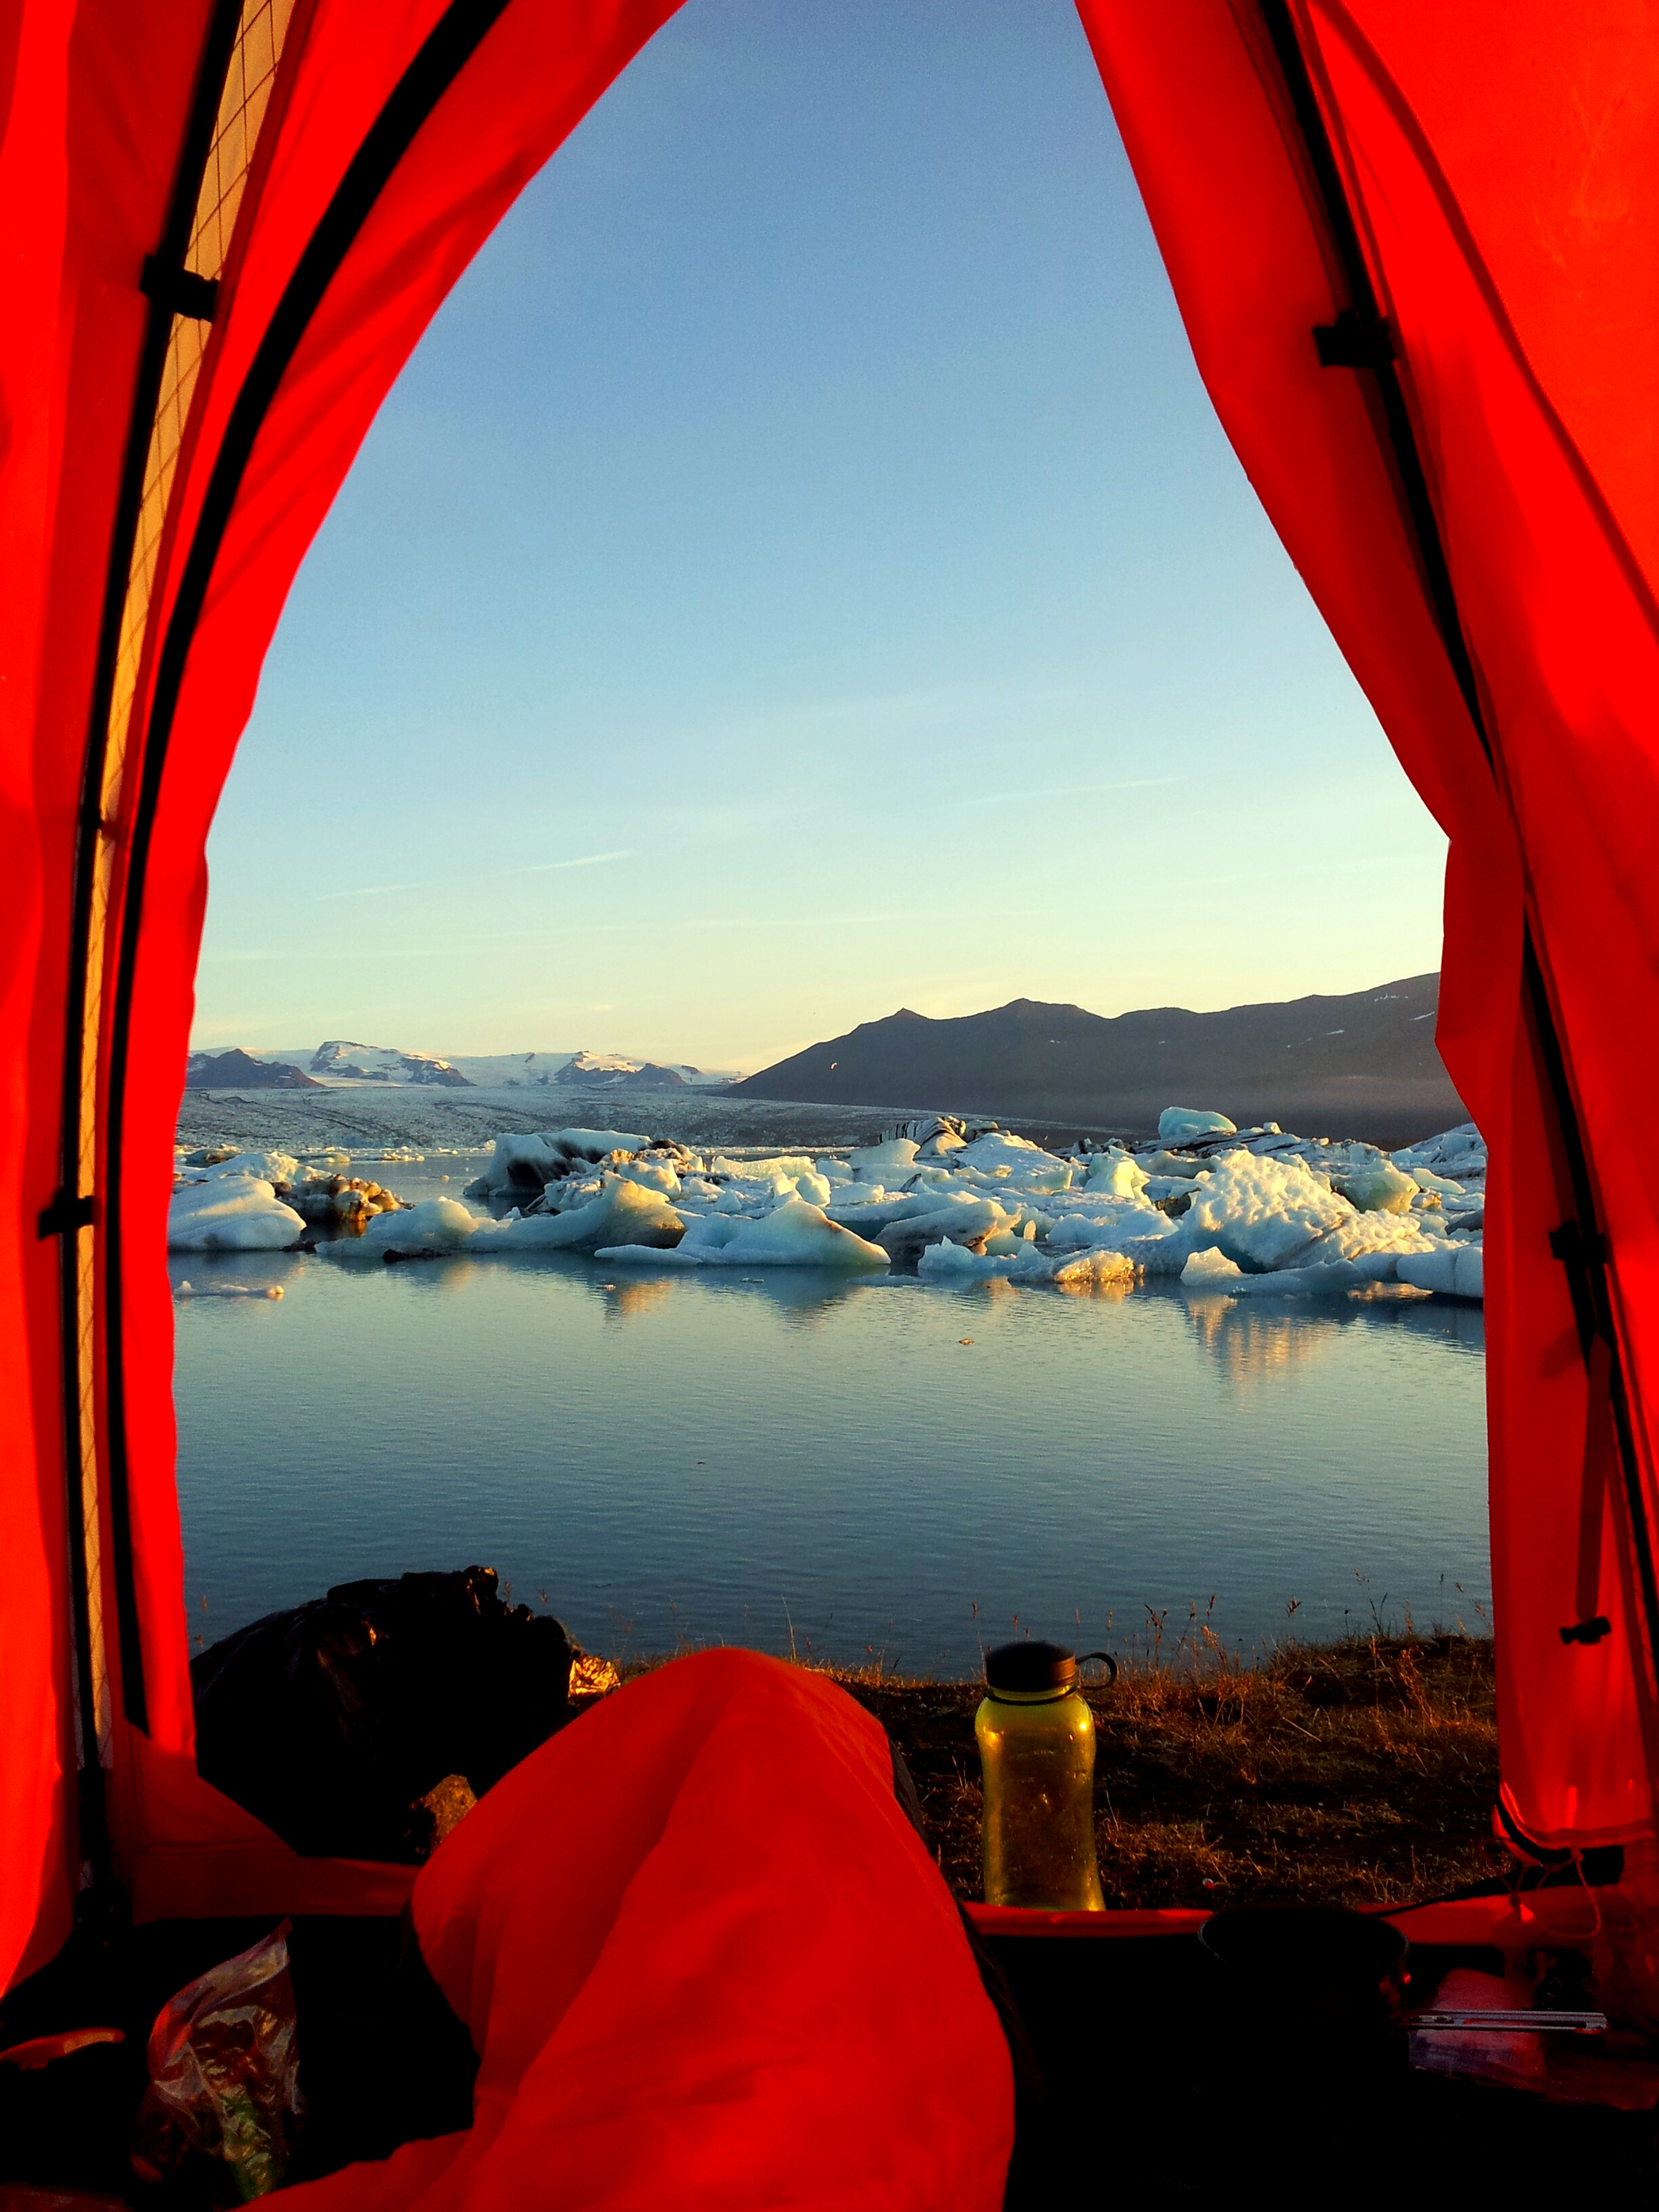 Unchained Iceland_looking out red tent